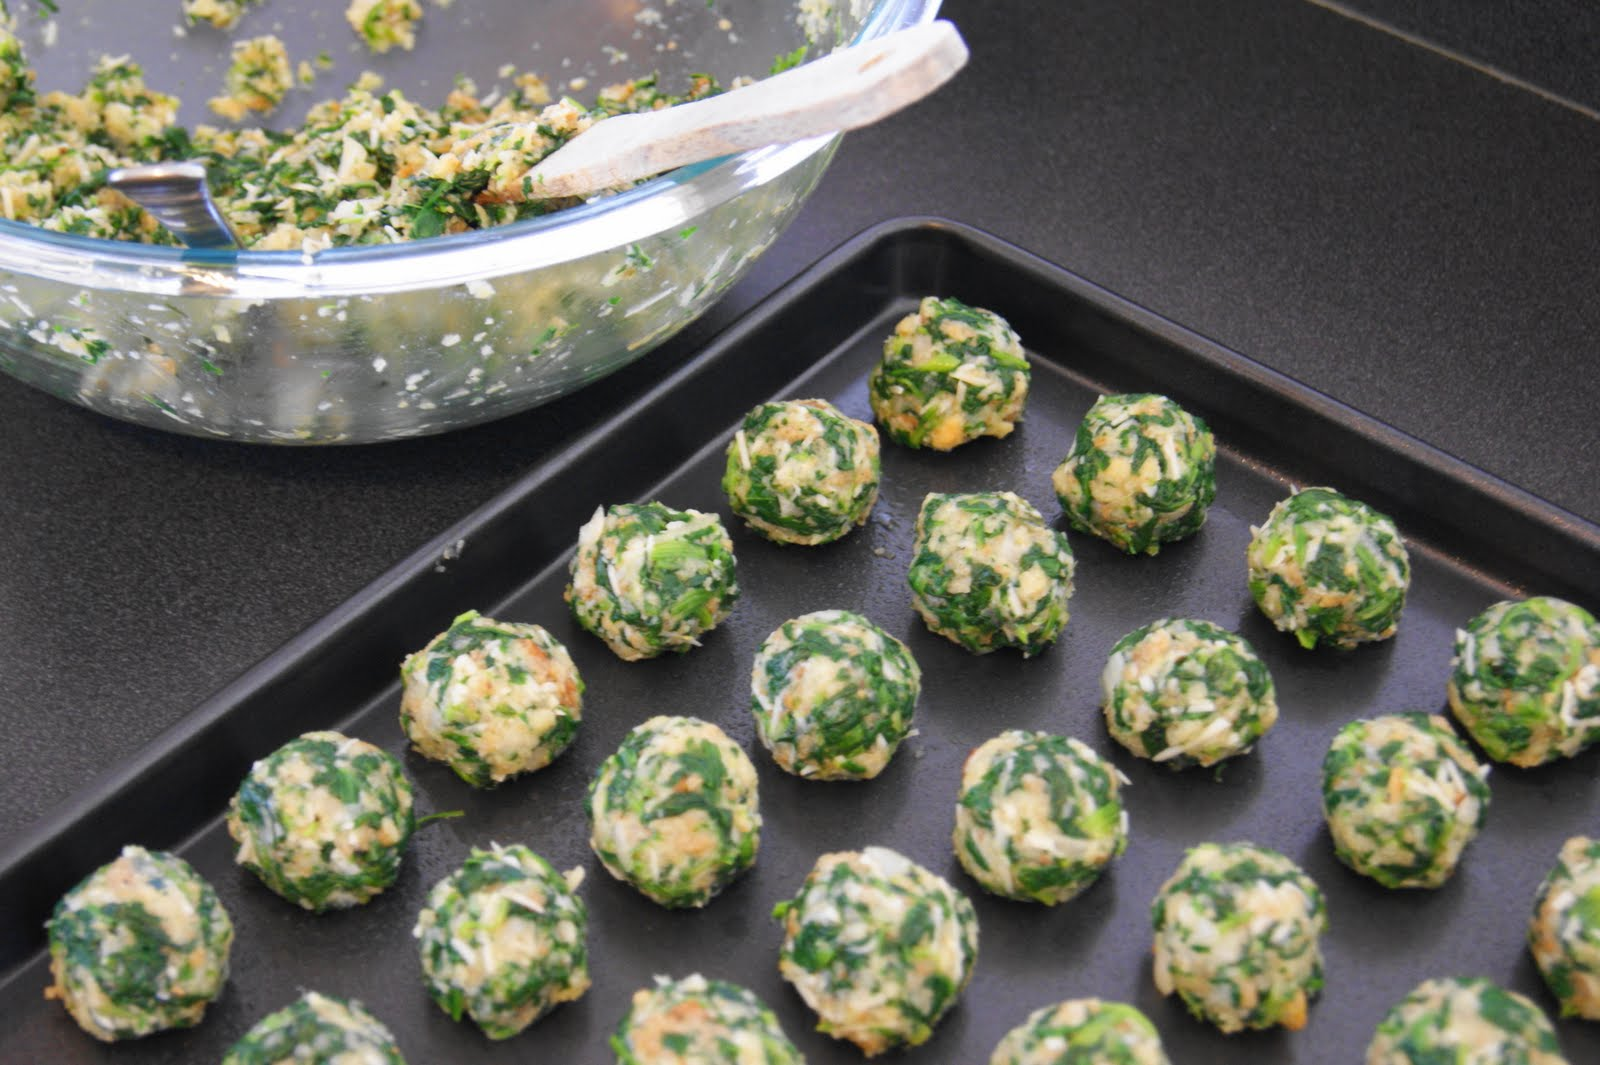 ... these really yummy stuffing balls!! ... uh, I mean Spinach Balls